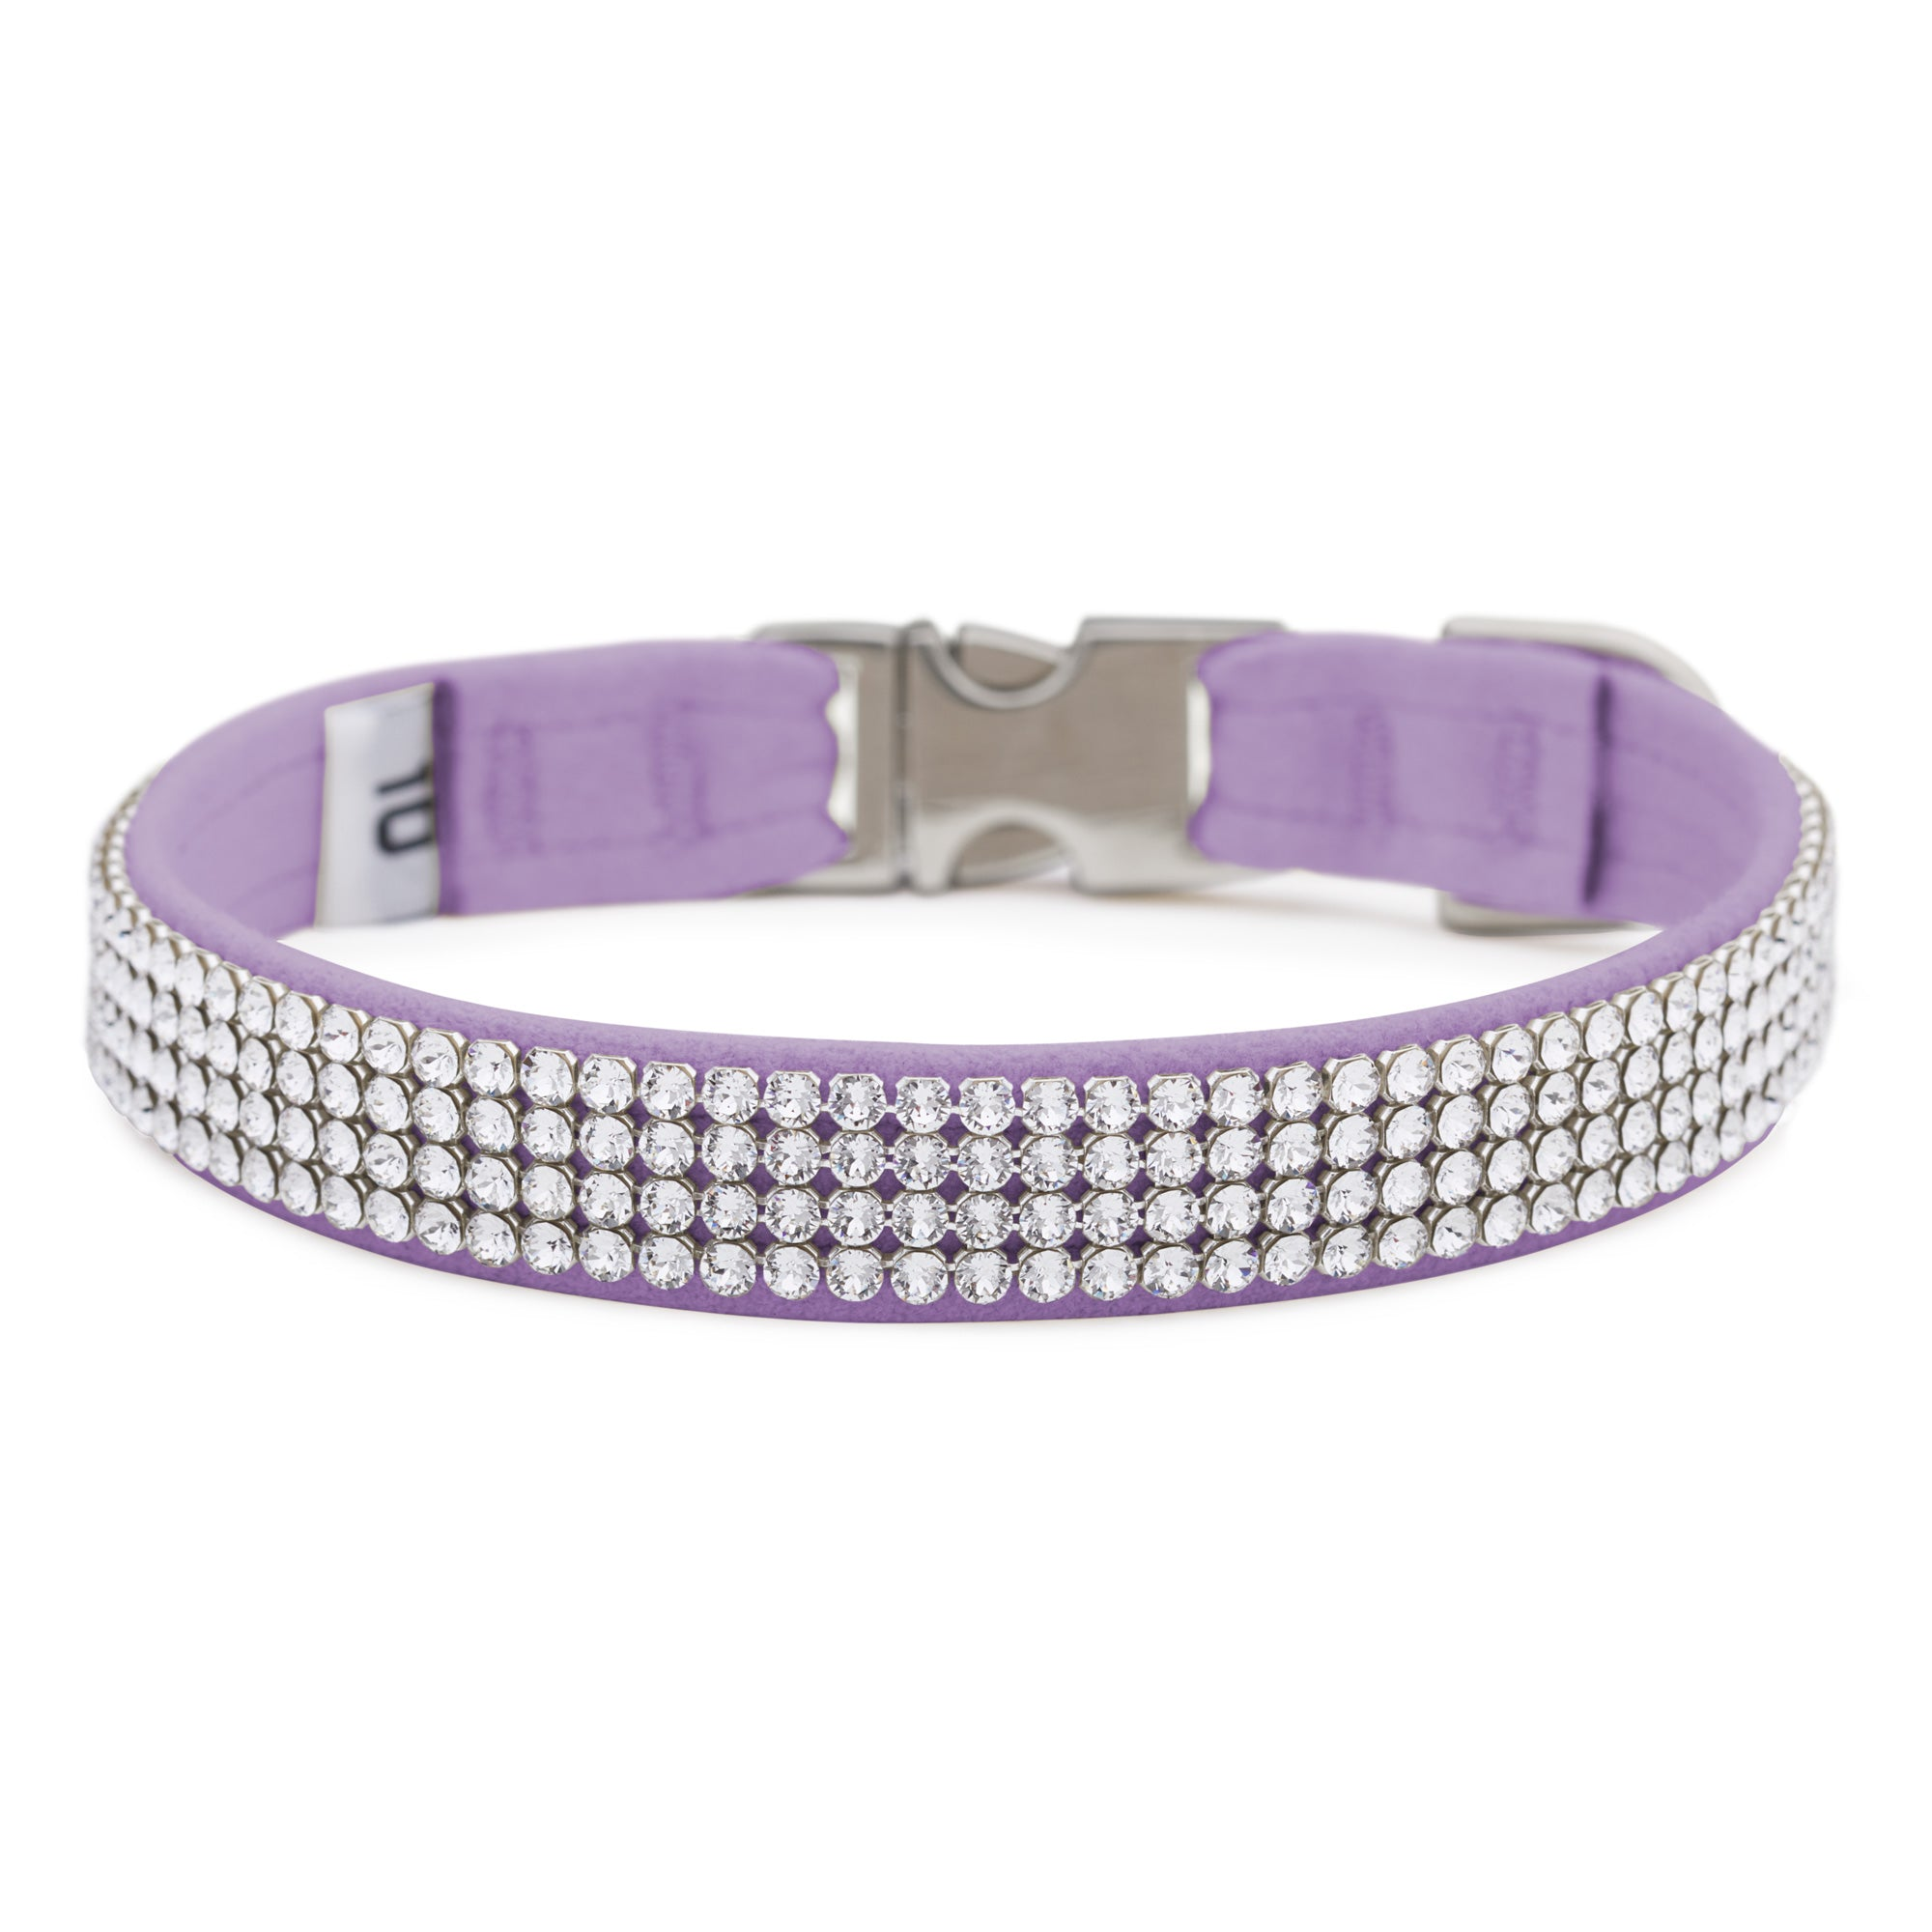 French Lavender 4 Row Giltmore Perfect Fit Collar